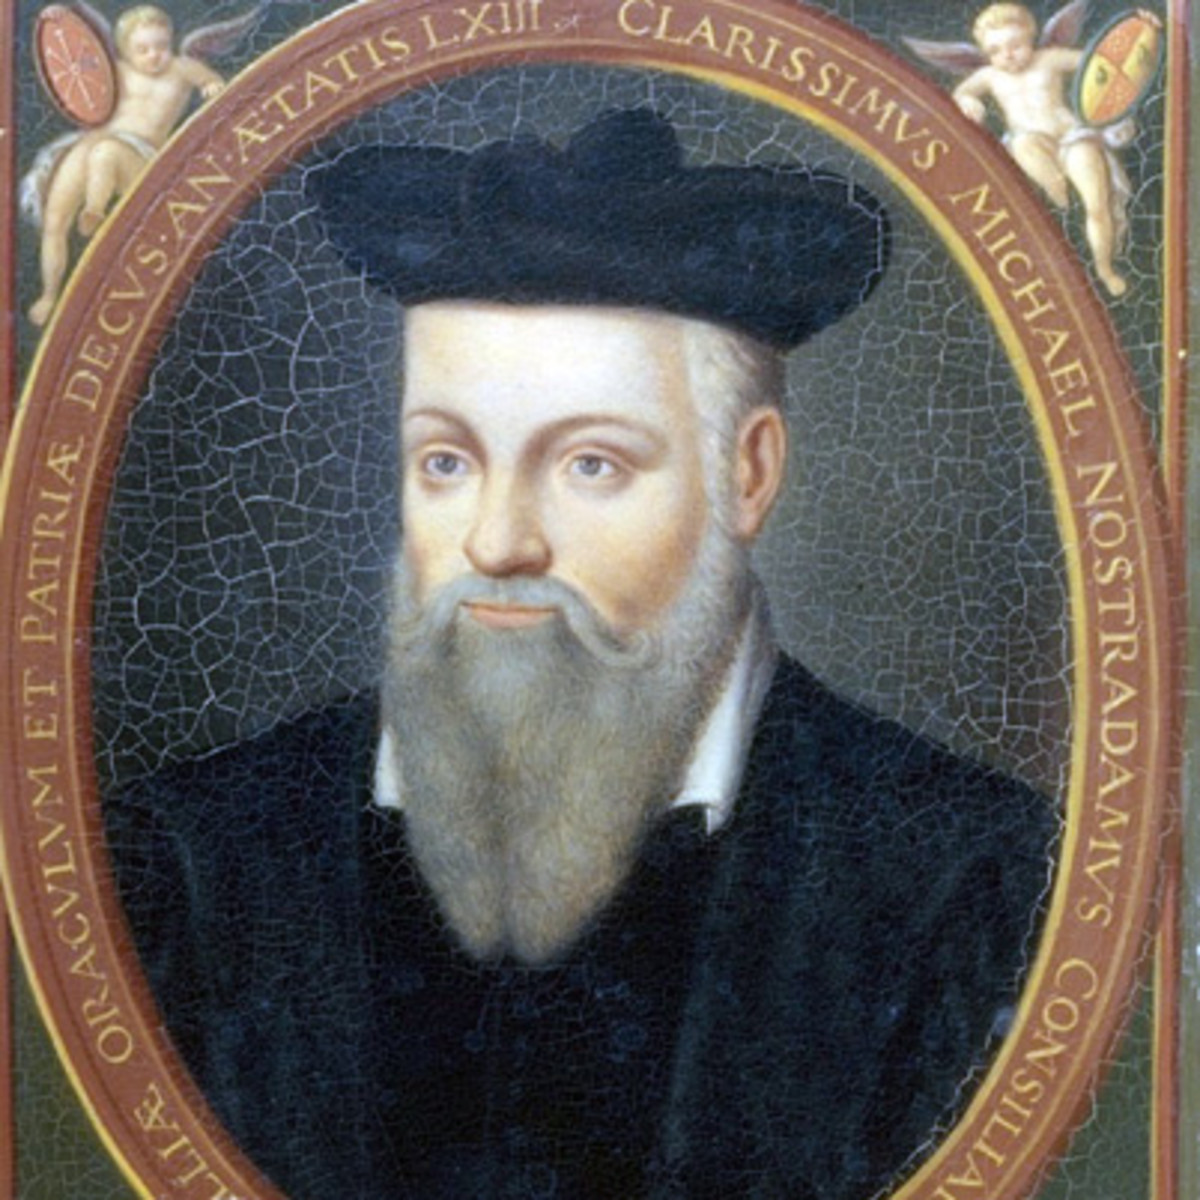 A painting of the French seer Nostradamus